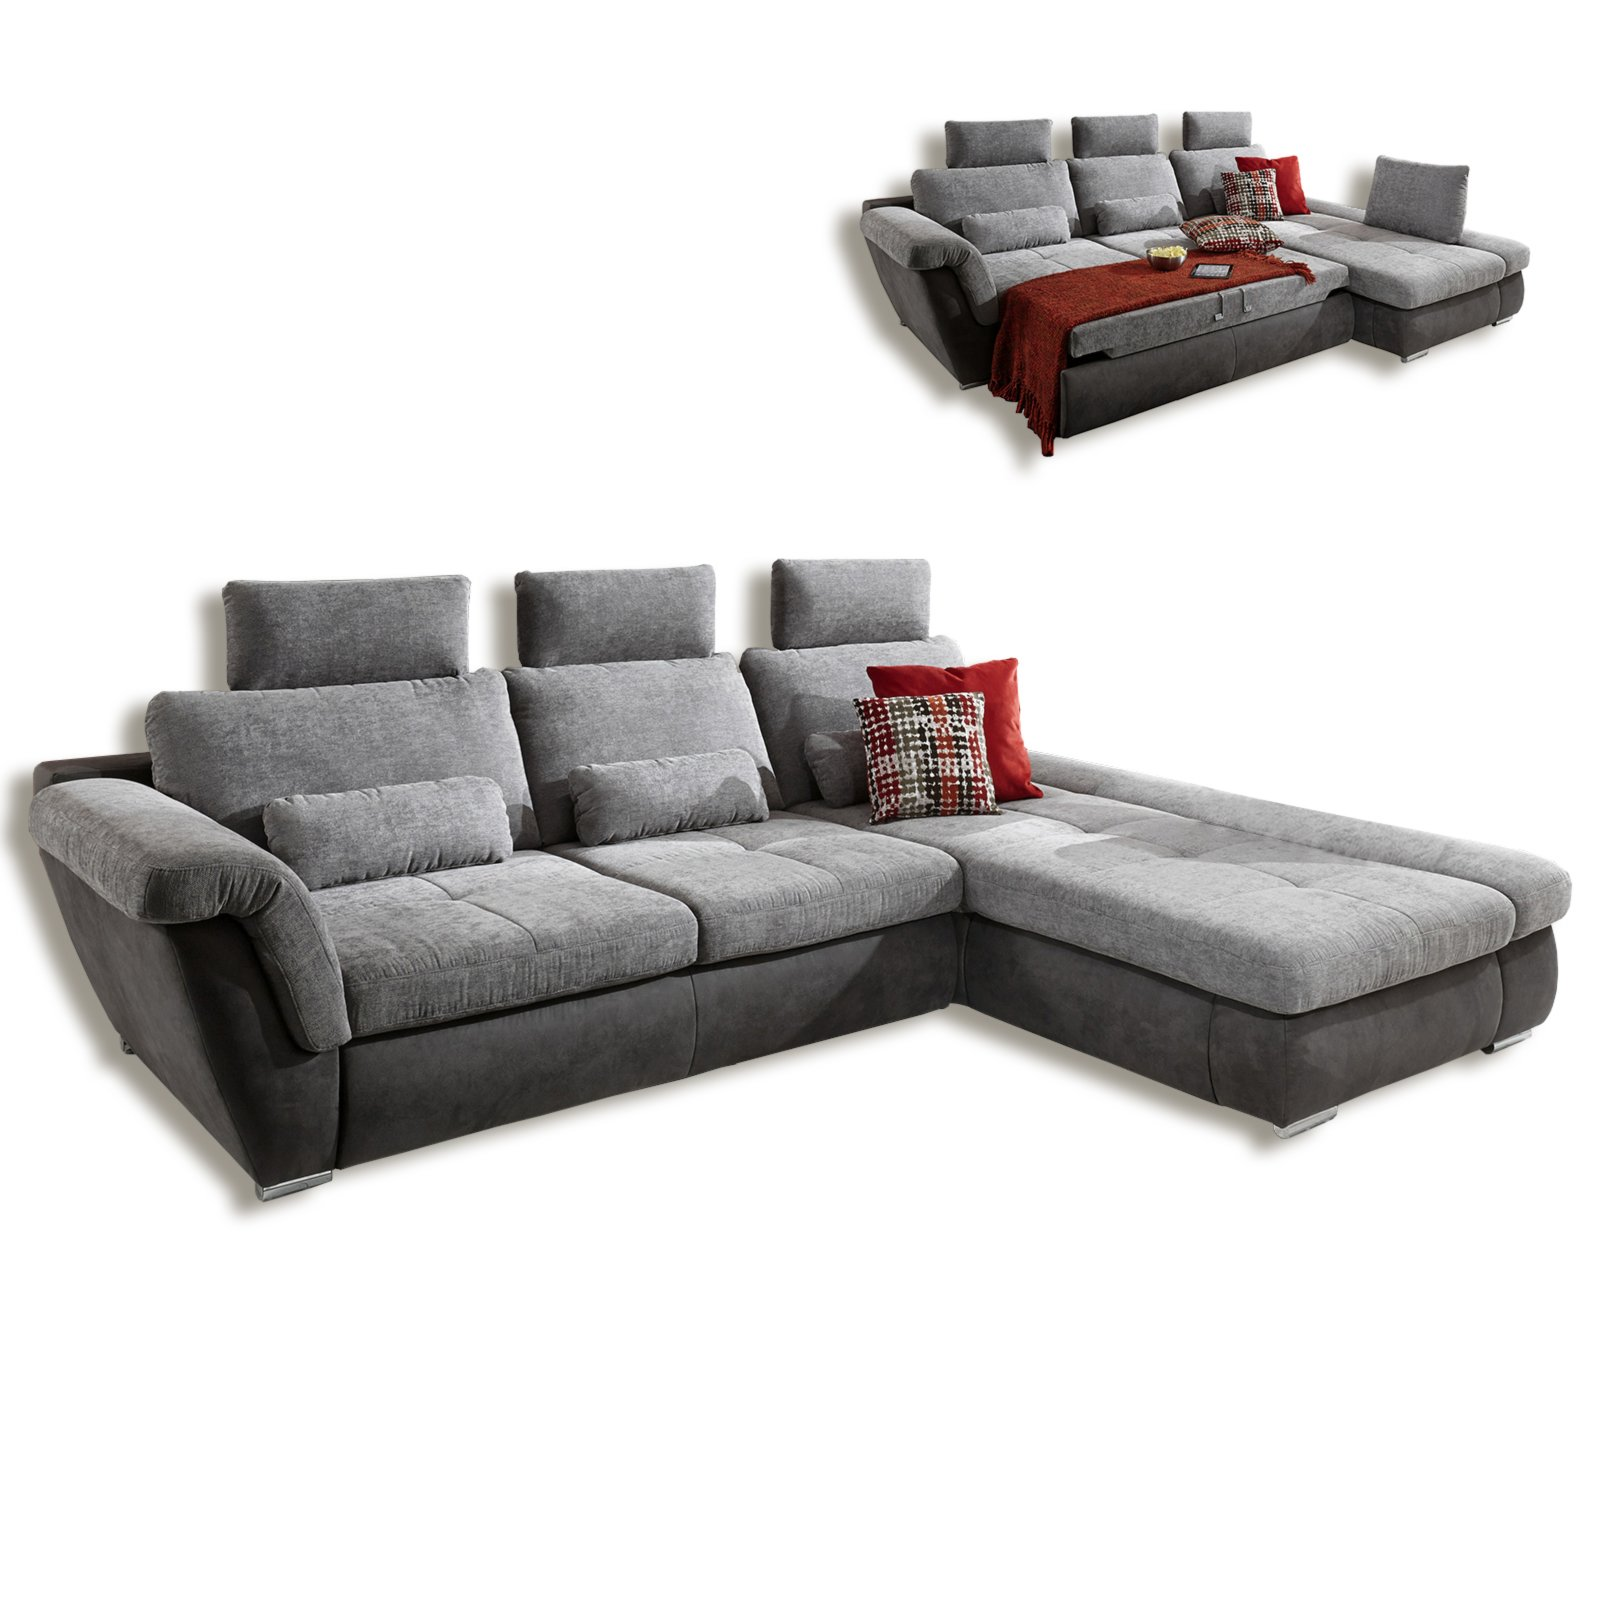 ecksofa grau anthrazit mit funktionen ecksofas l. Black Bedroom Furniture Sets. Home Design Ideas